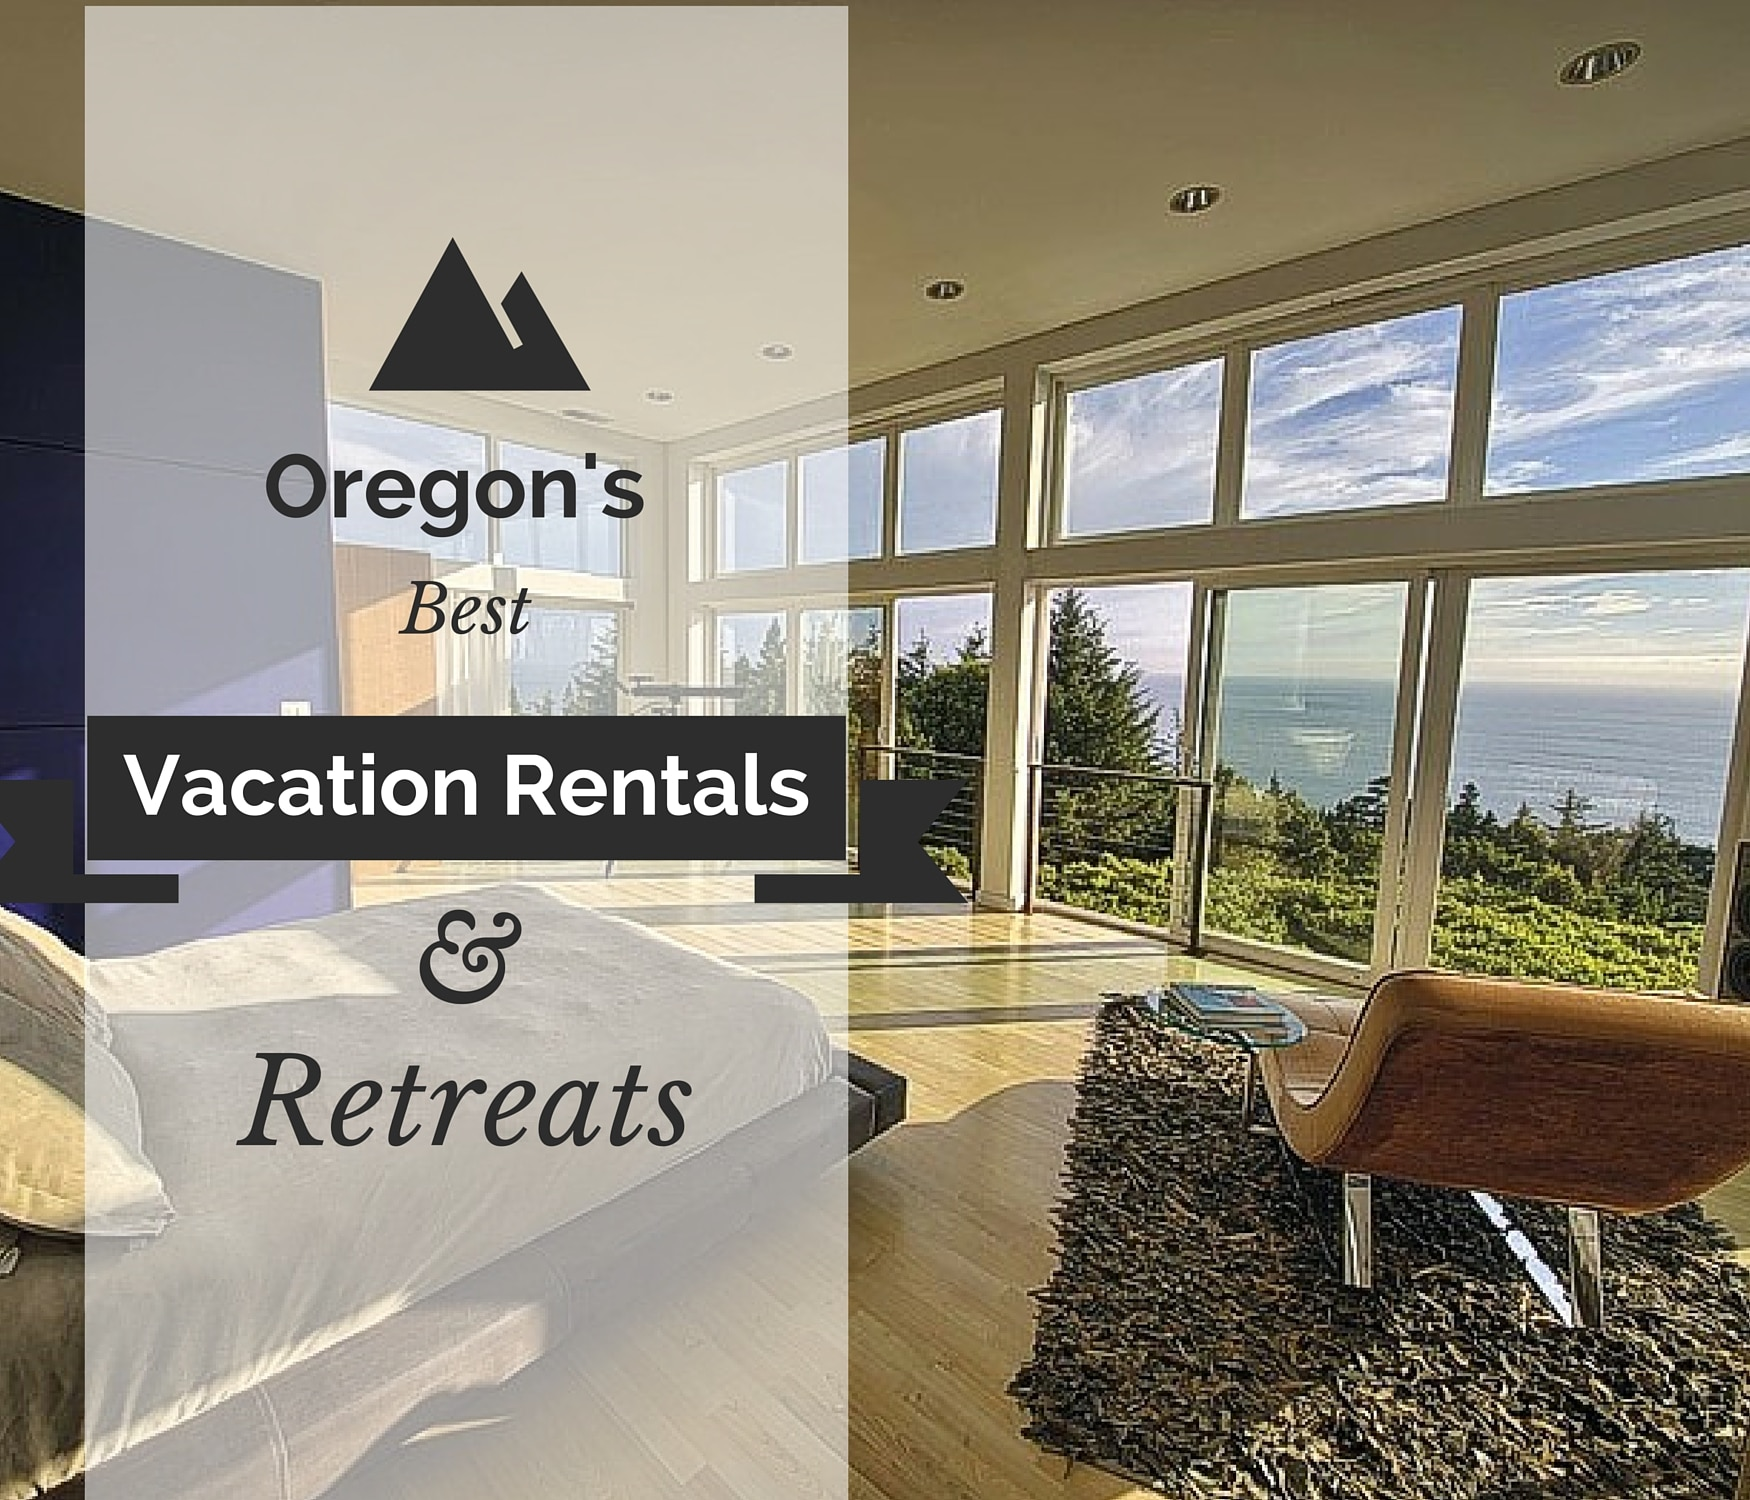 Oregon's Best Vacation Rentals And Retreats